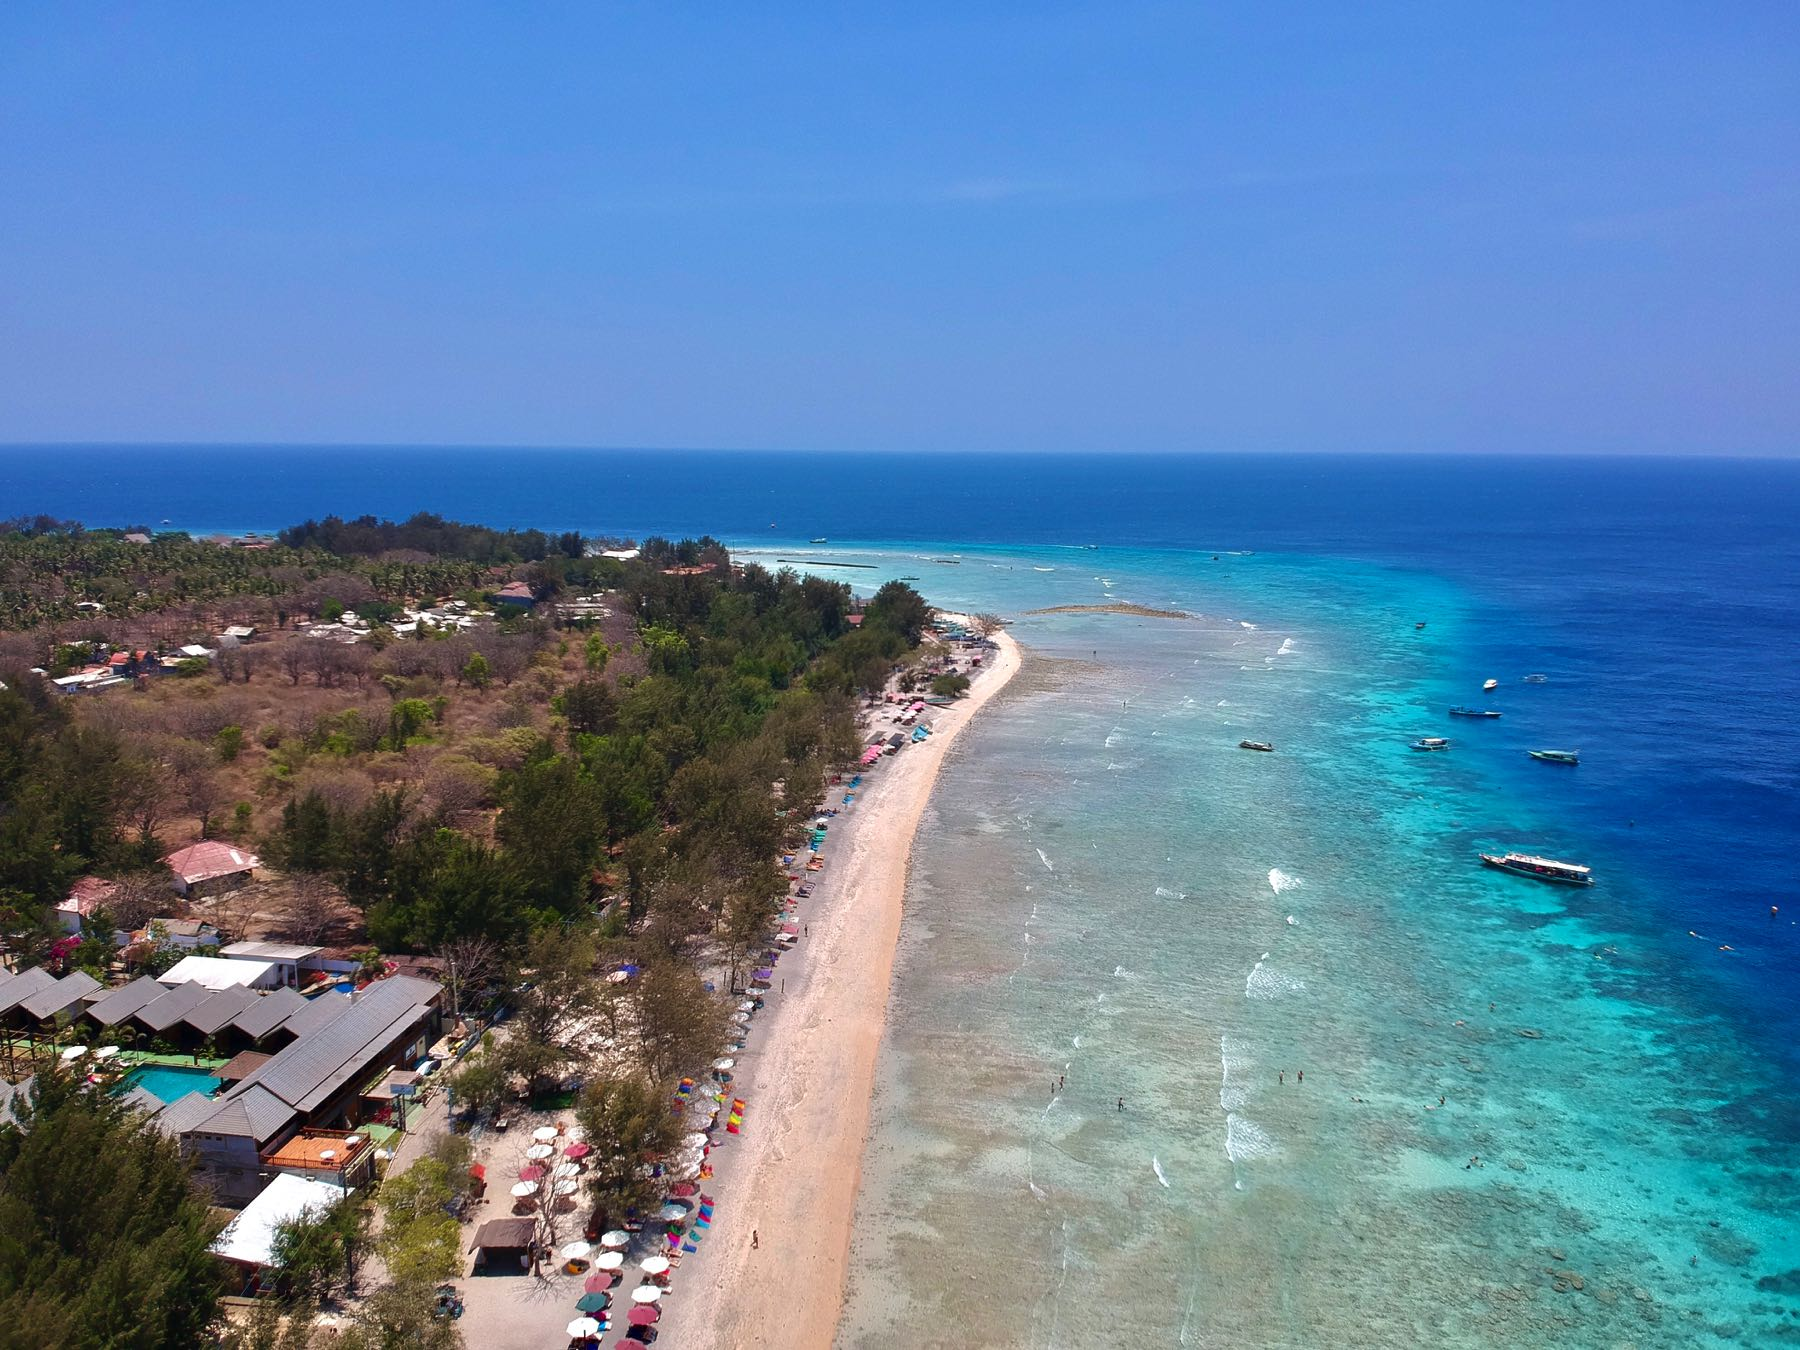 Gili Trawangan - Our Experience On Indonesia's Backpacker Island